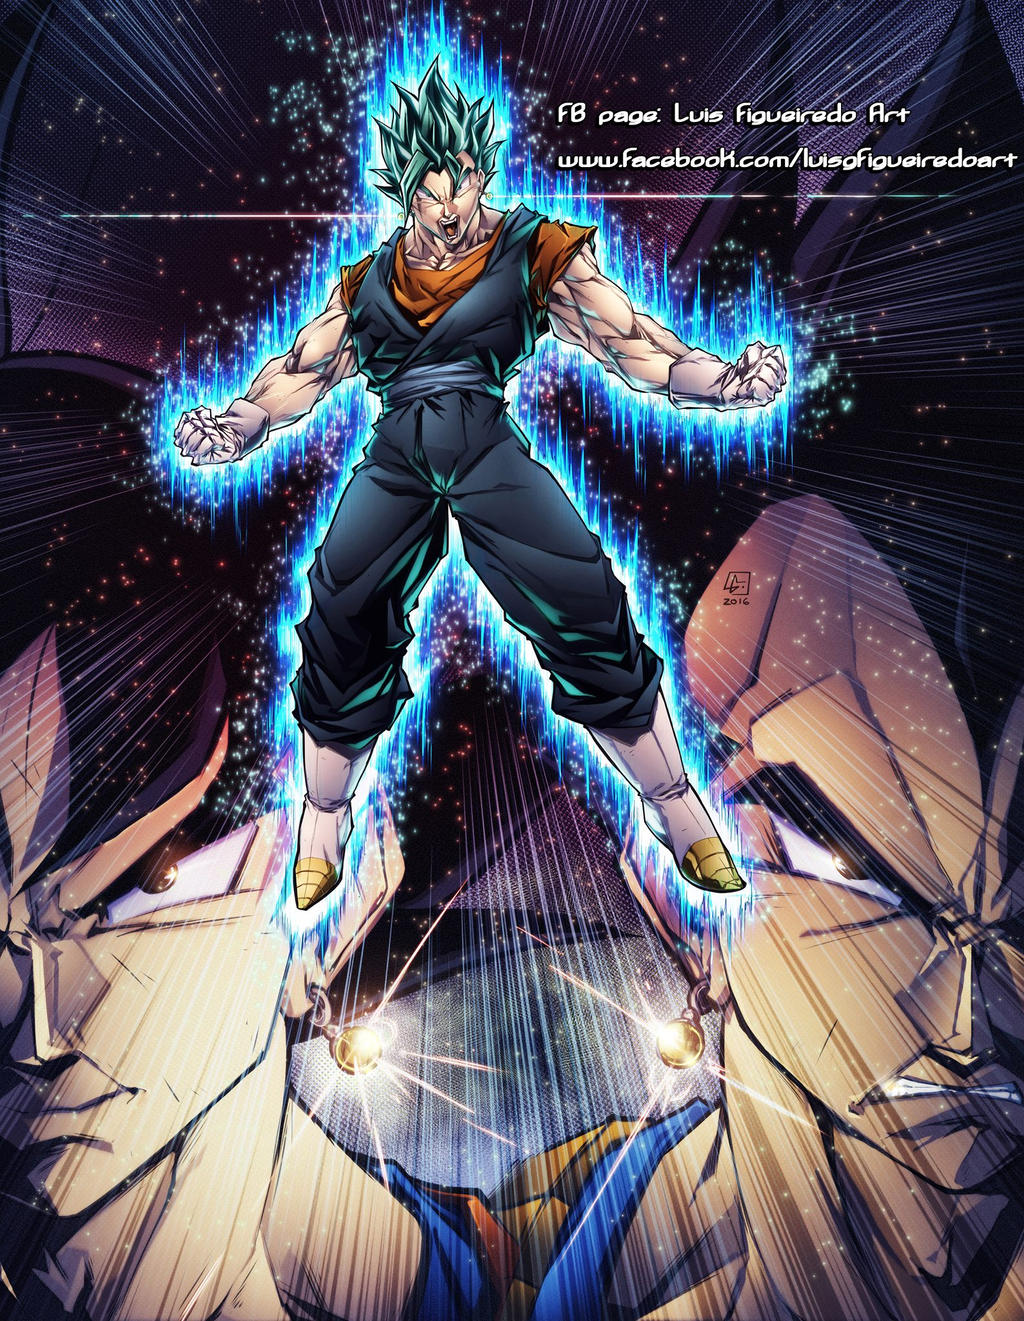 VEGITO SUPER SAIYAN GOD colored by marvelmania